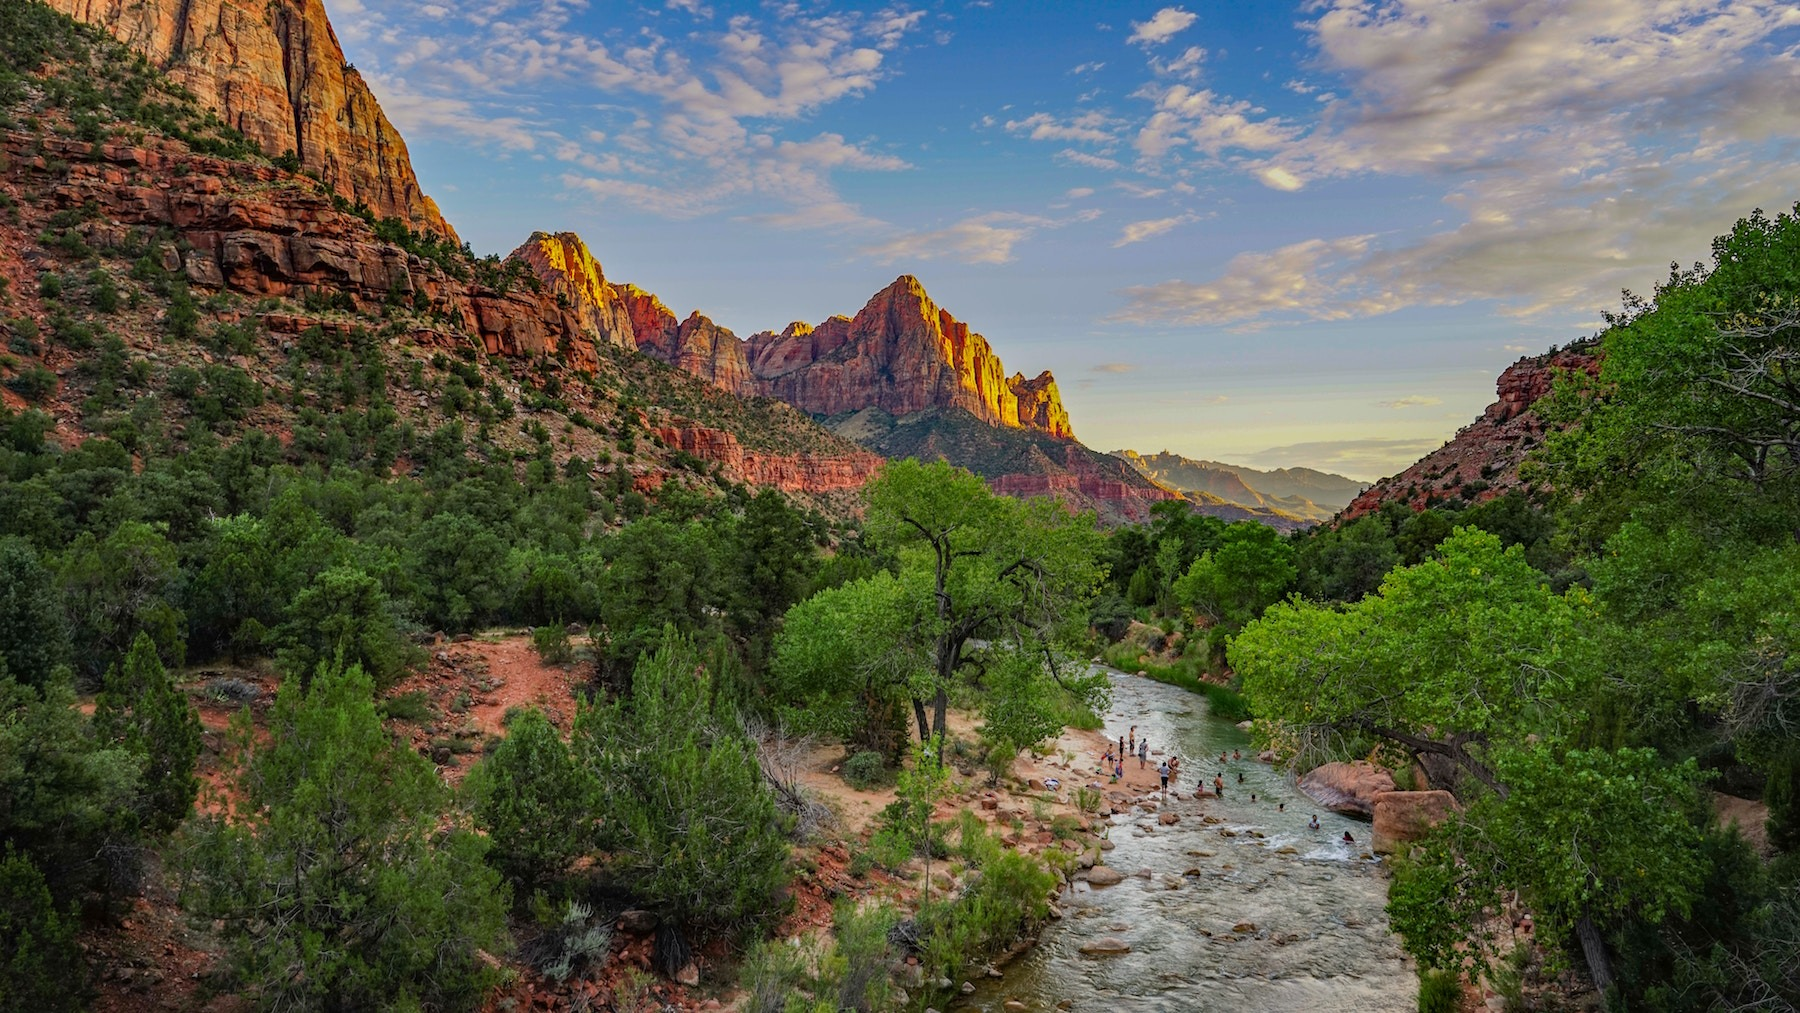 zion national park utah spring hikes